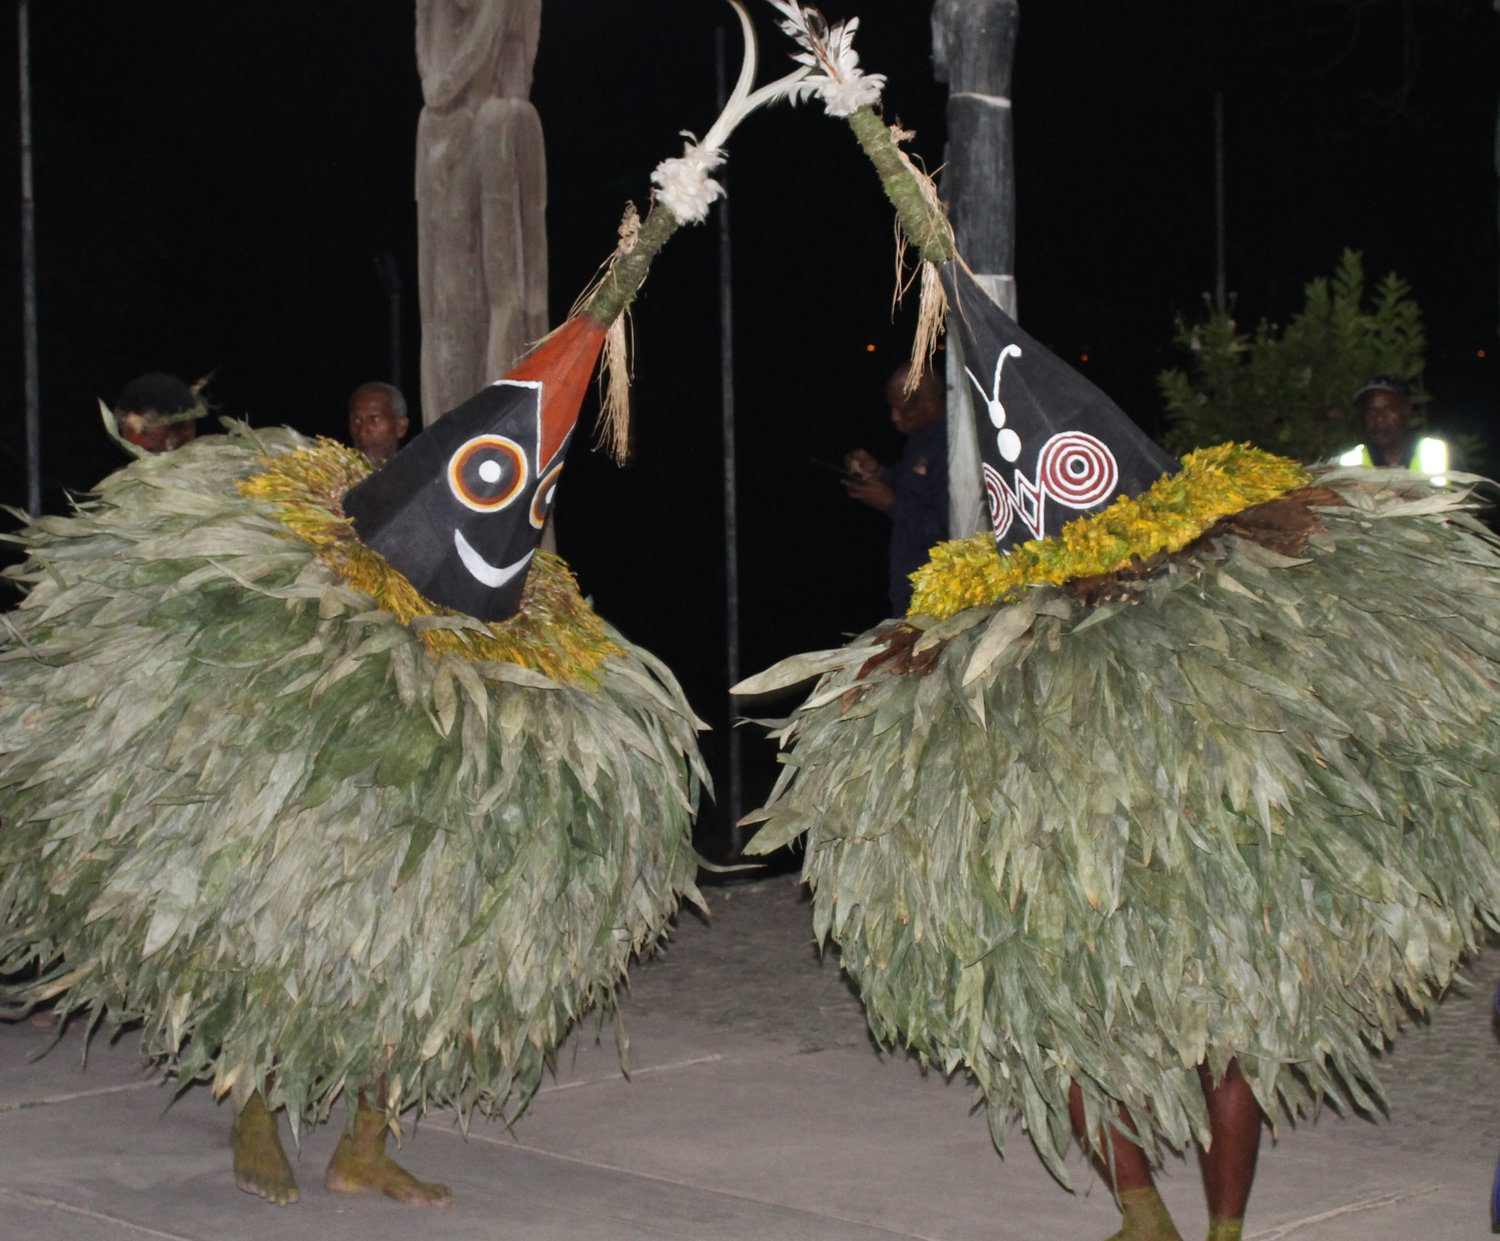 Tolai Tumbuan performan<em>c</em>e at the National Museum in Port Moresby, Papua New Guinea, in 2015. Photo: Judy Ryon